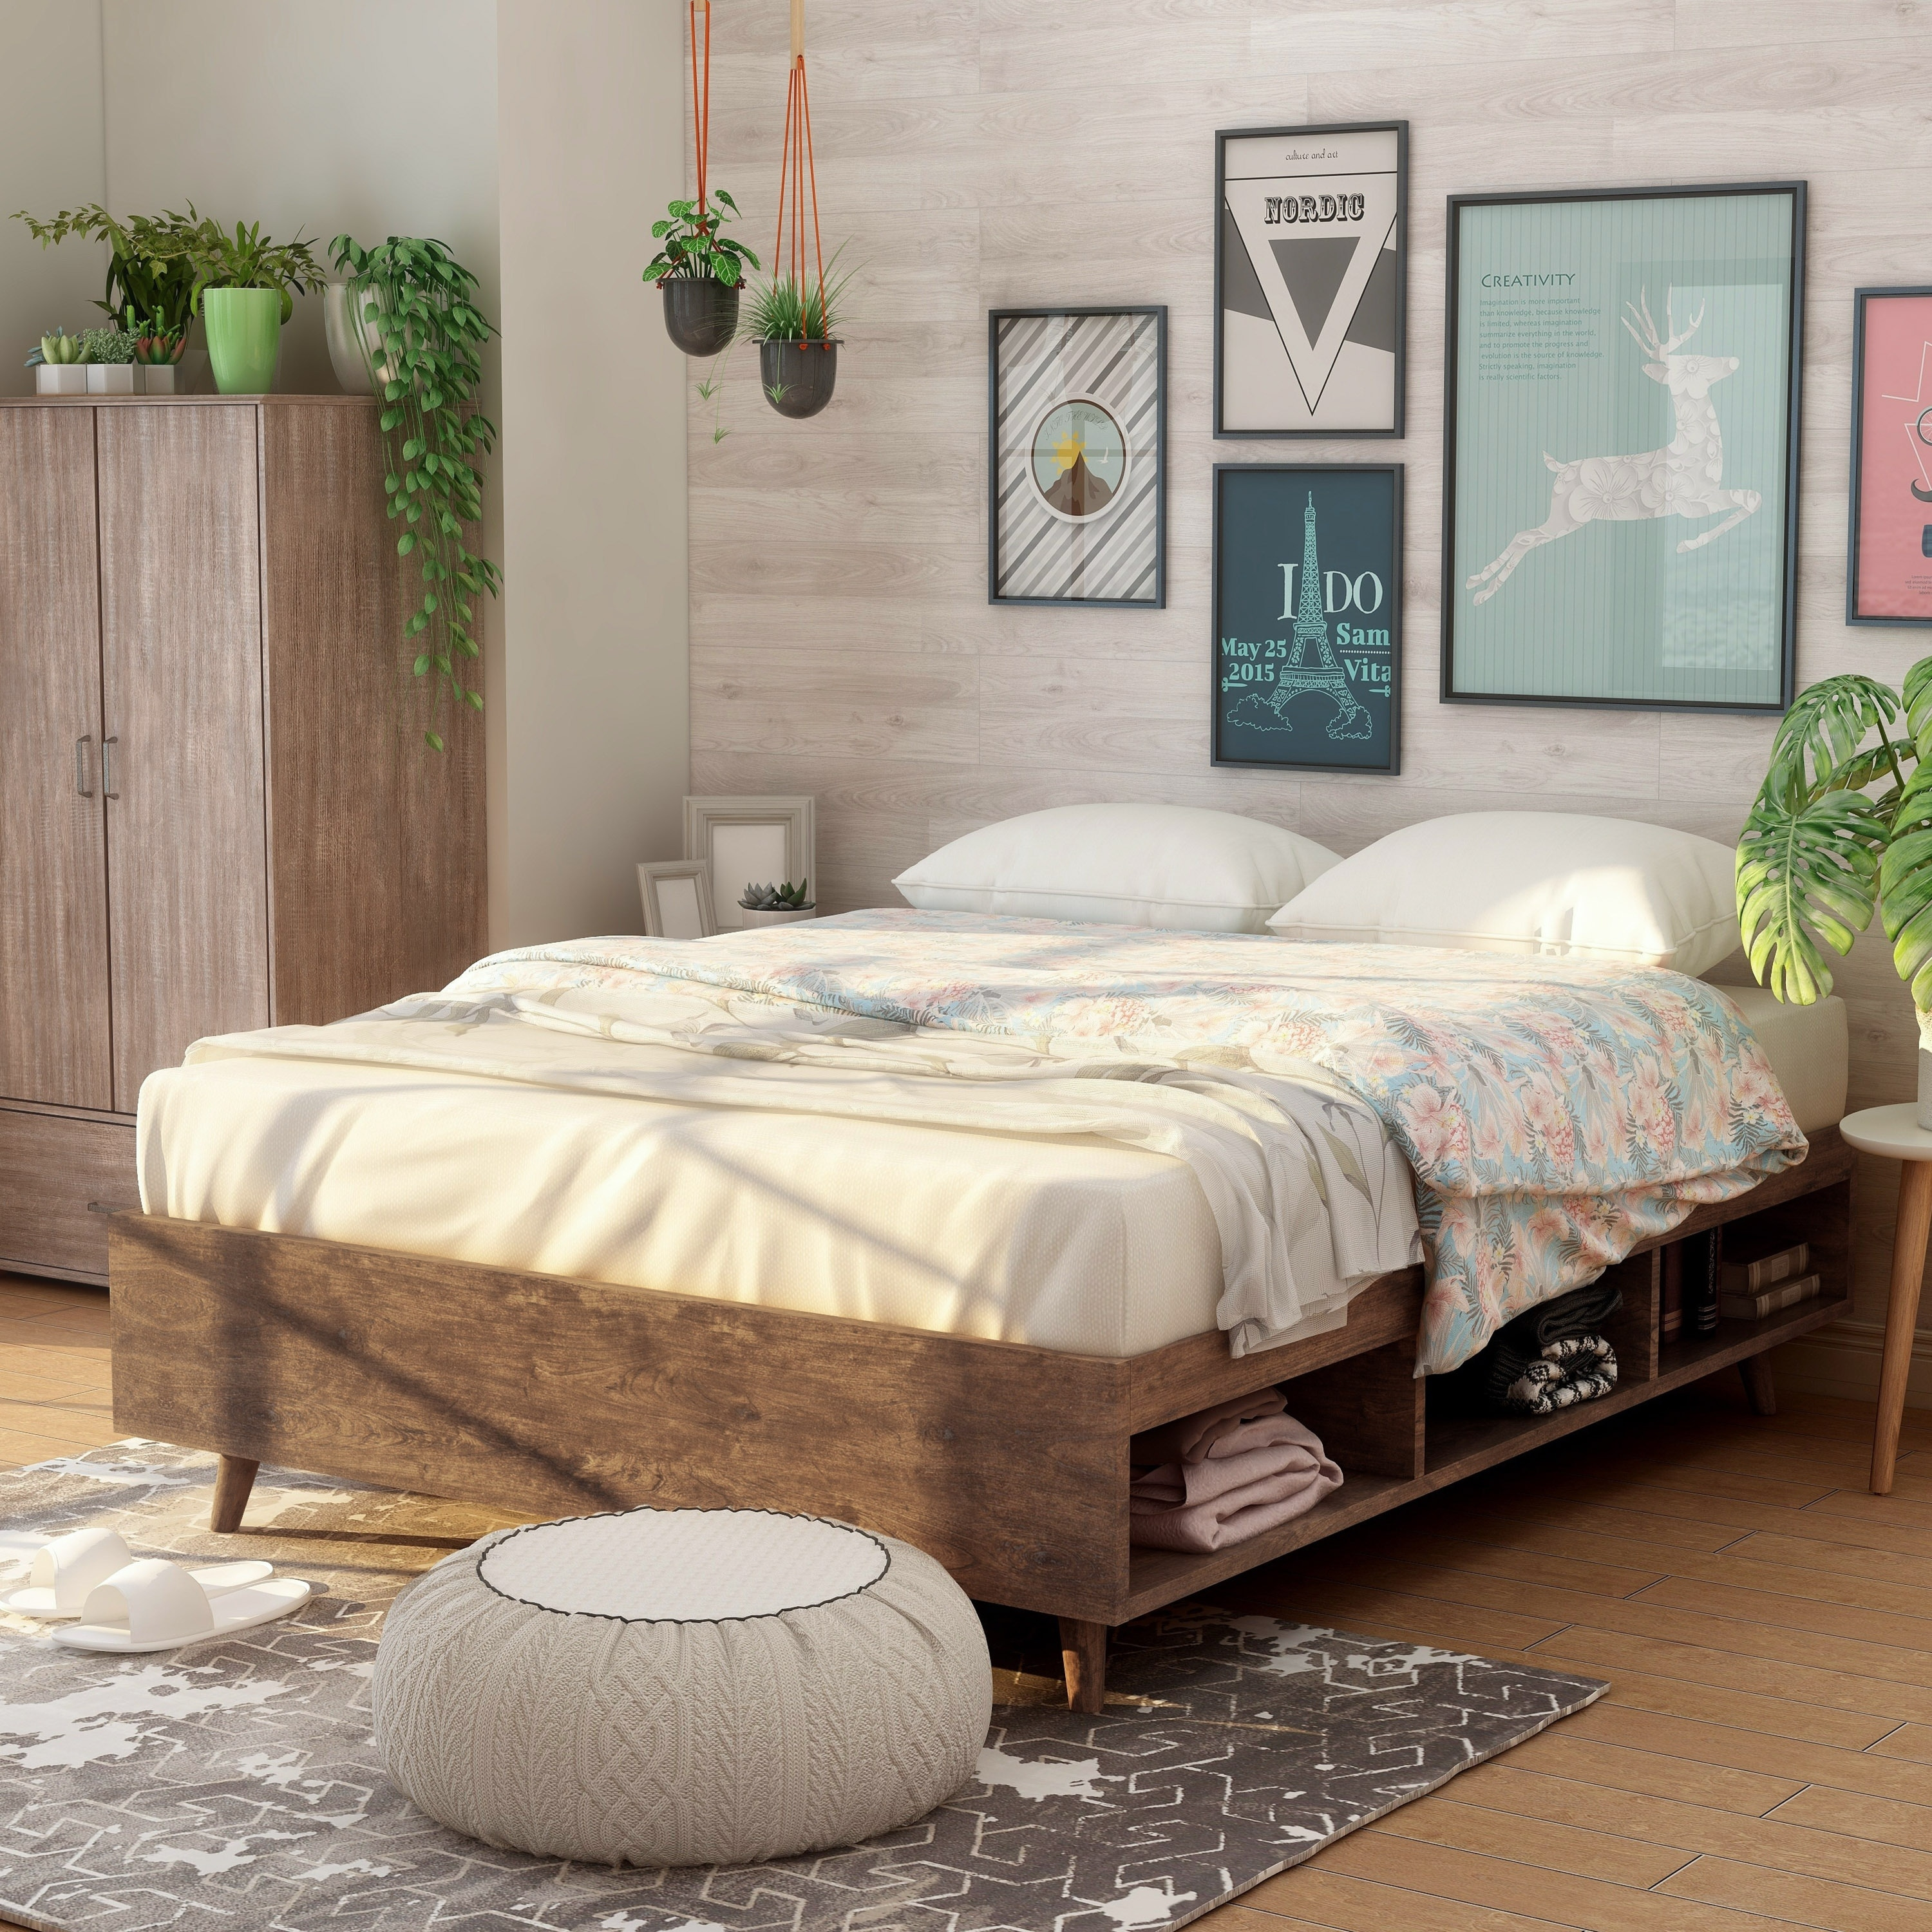 Shop Black Friday Deals On Kael Mid Century Modern Storage Queen Size Platform Bed Overstock 30104685